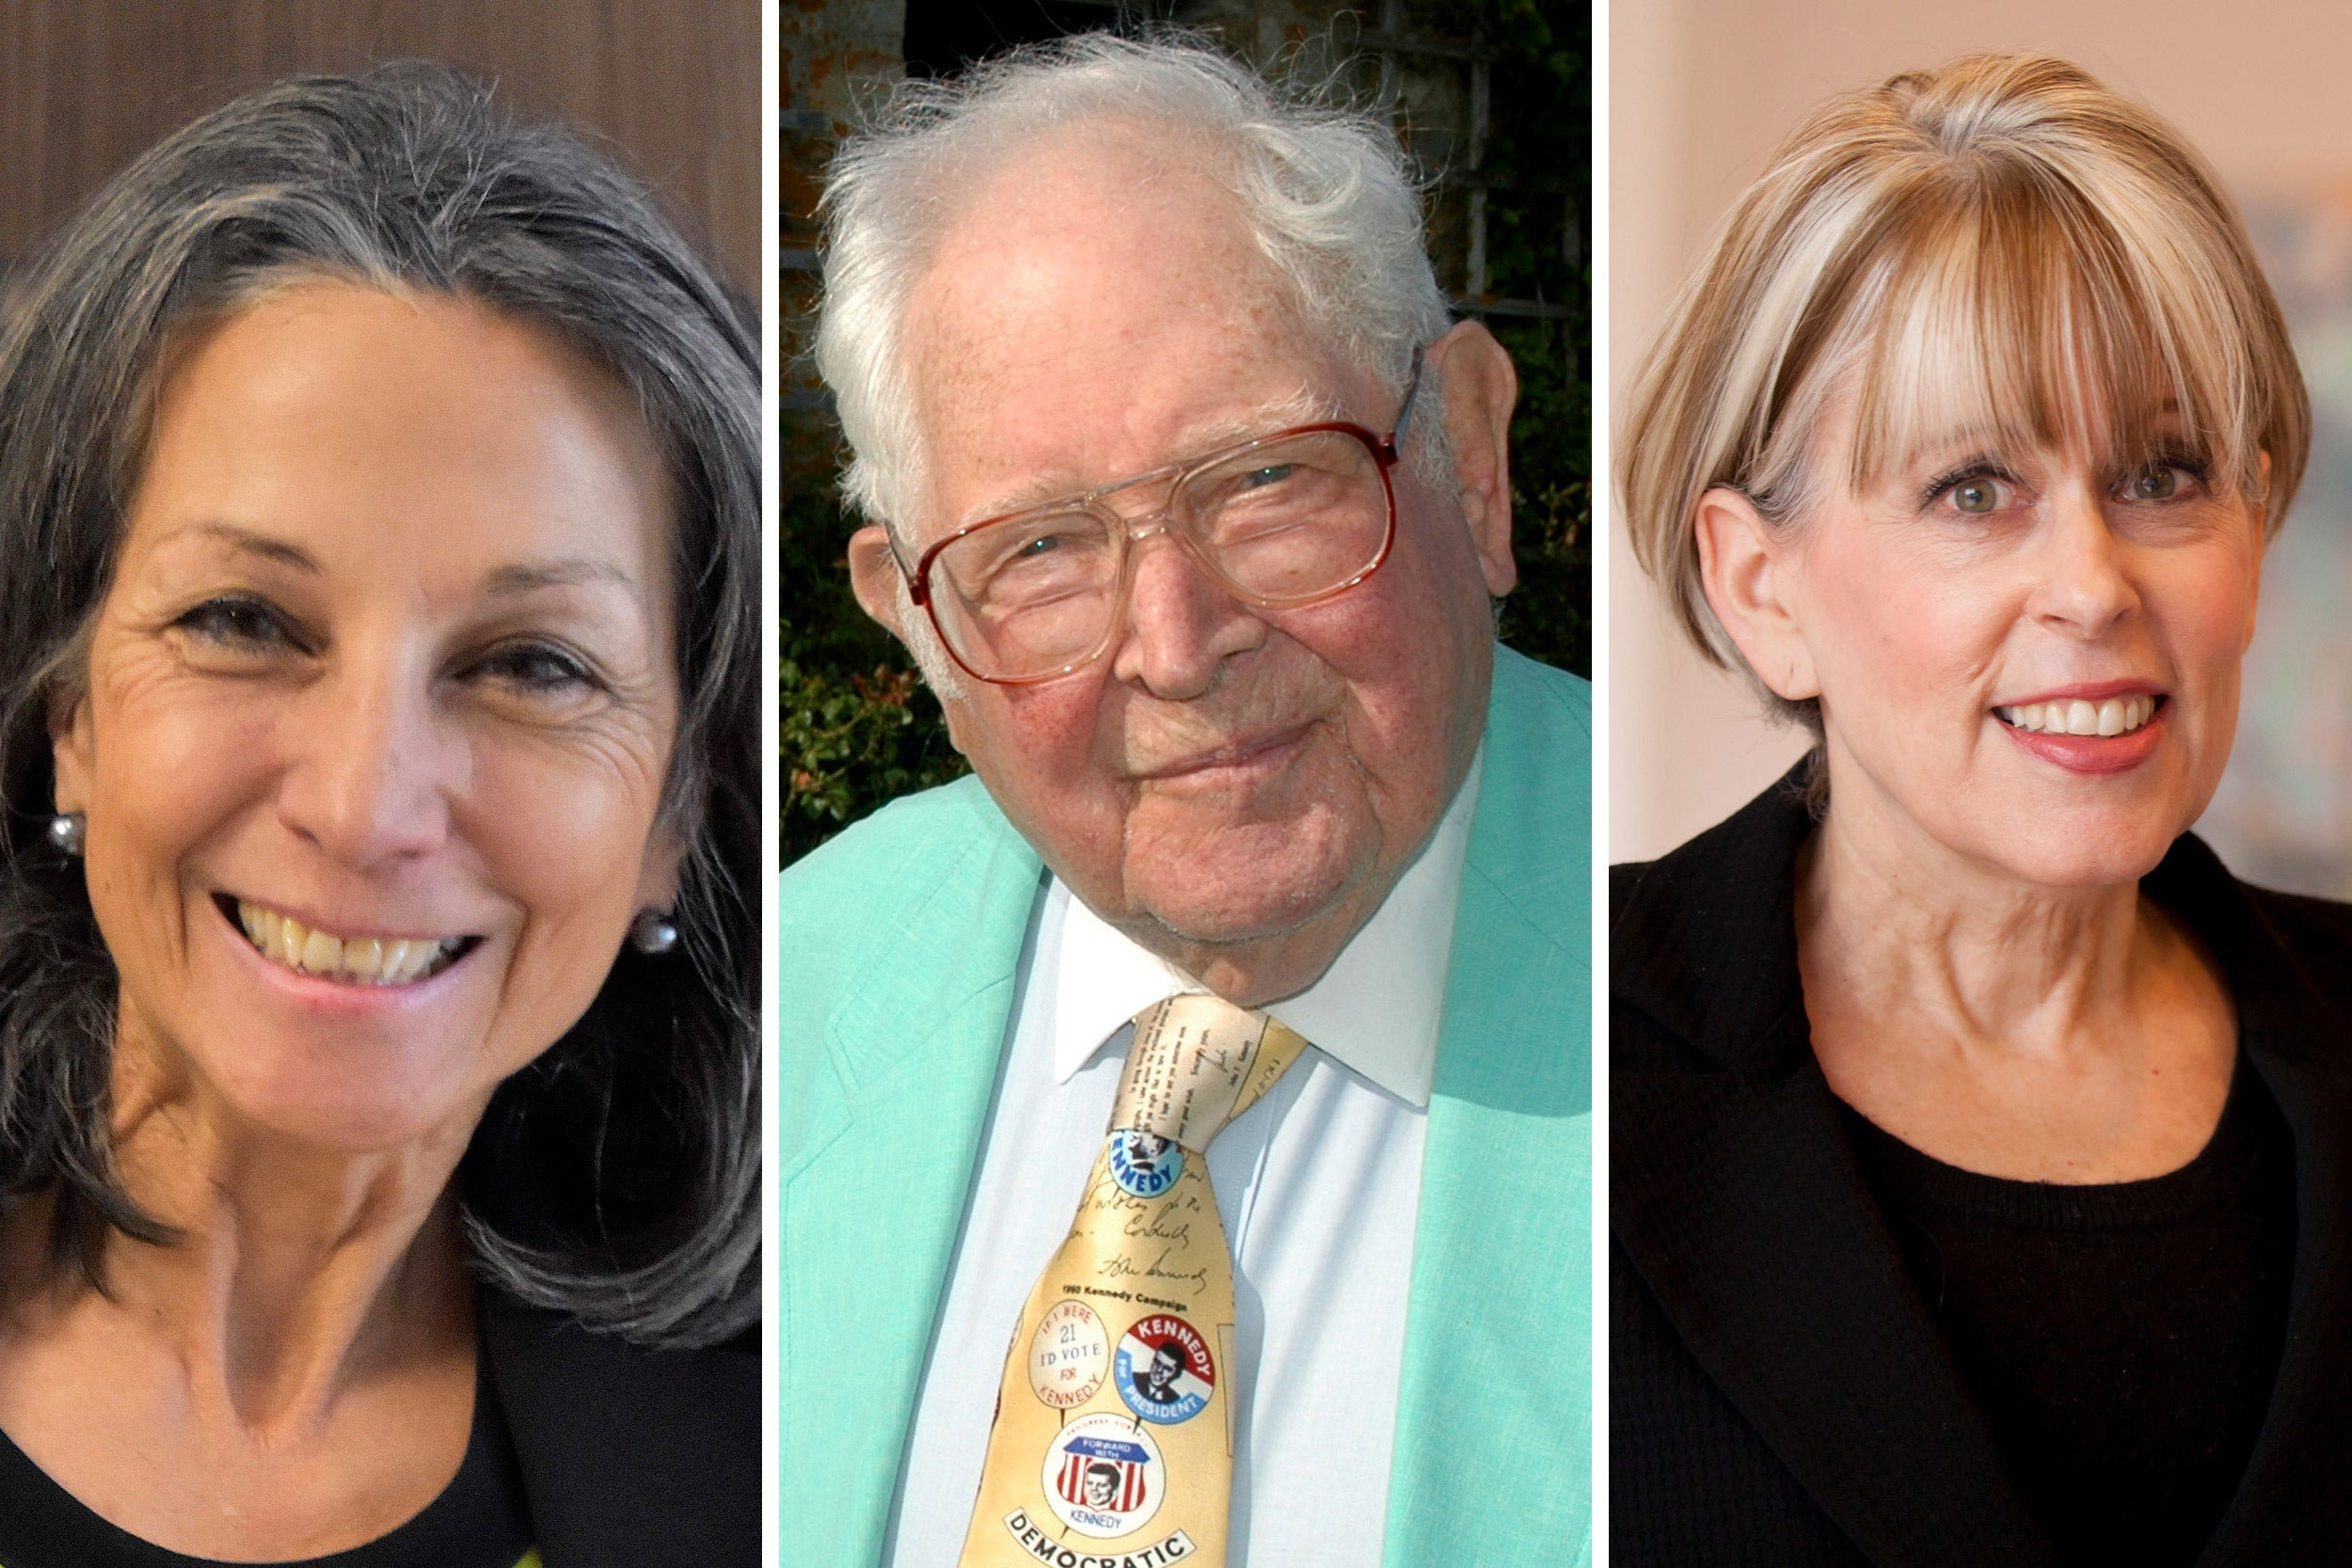 The HAA medalists are Teresita Alvarez-Bjelland '76, M.B.A. '79; Dan H. Fenn Jr. '44, A.M. '72; and Tamara Elliott Rogers '74.